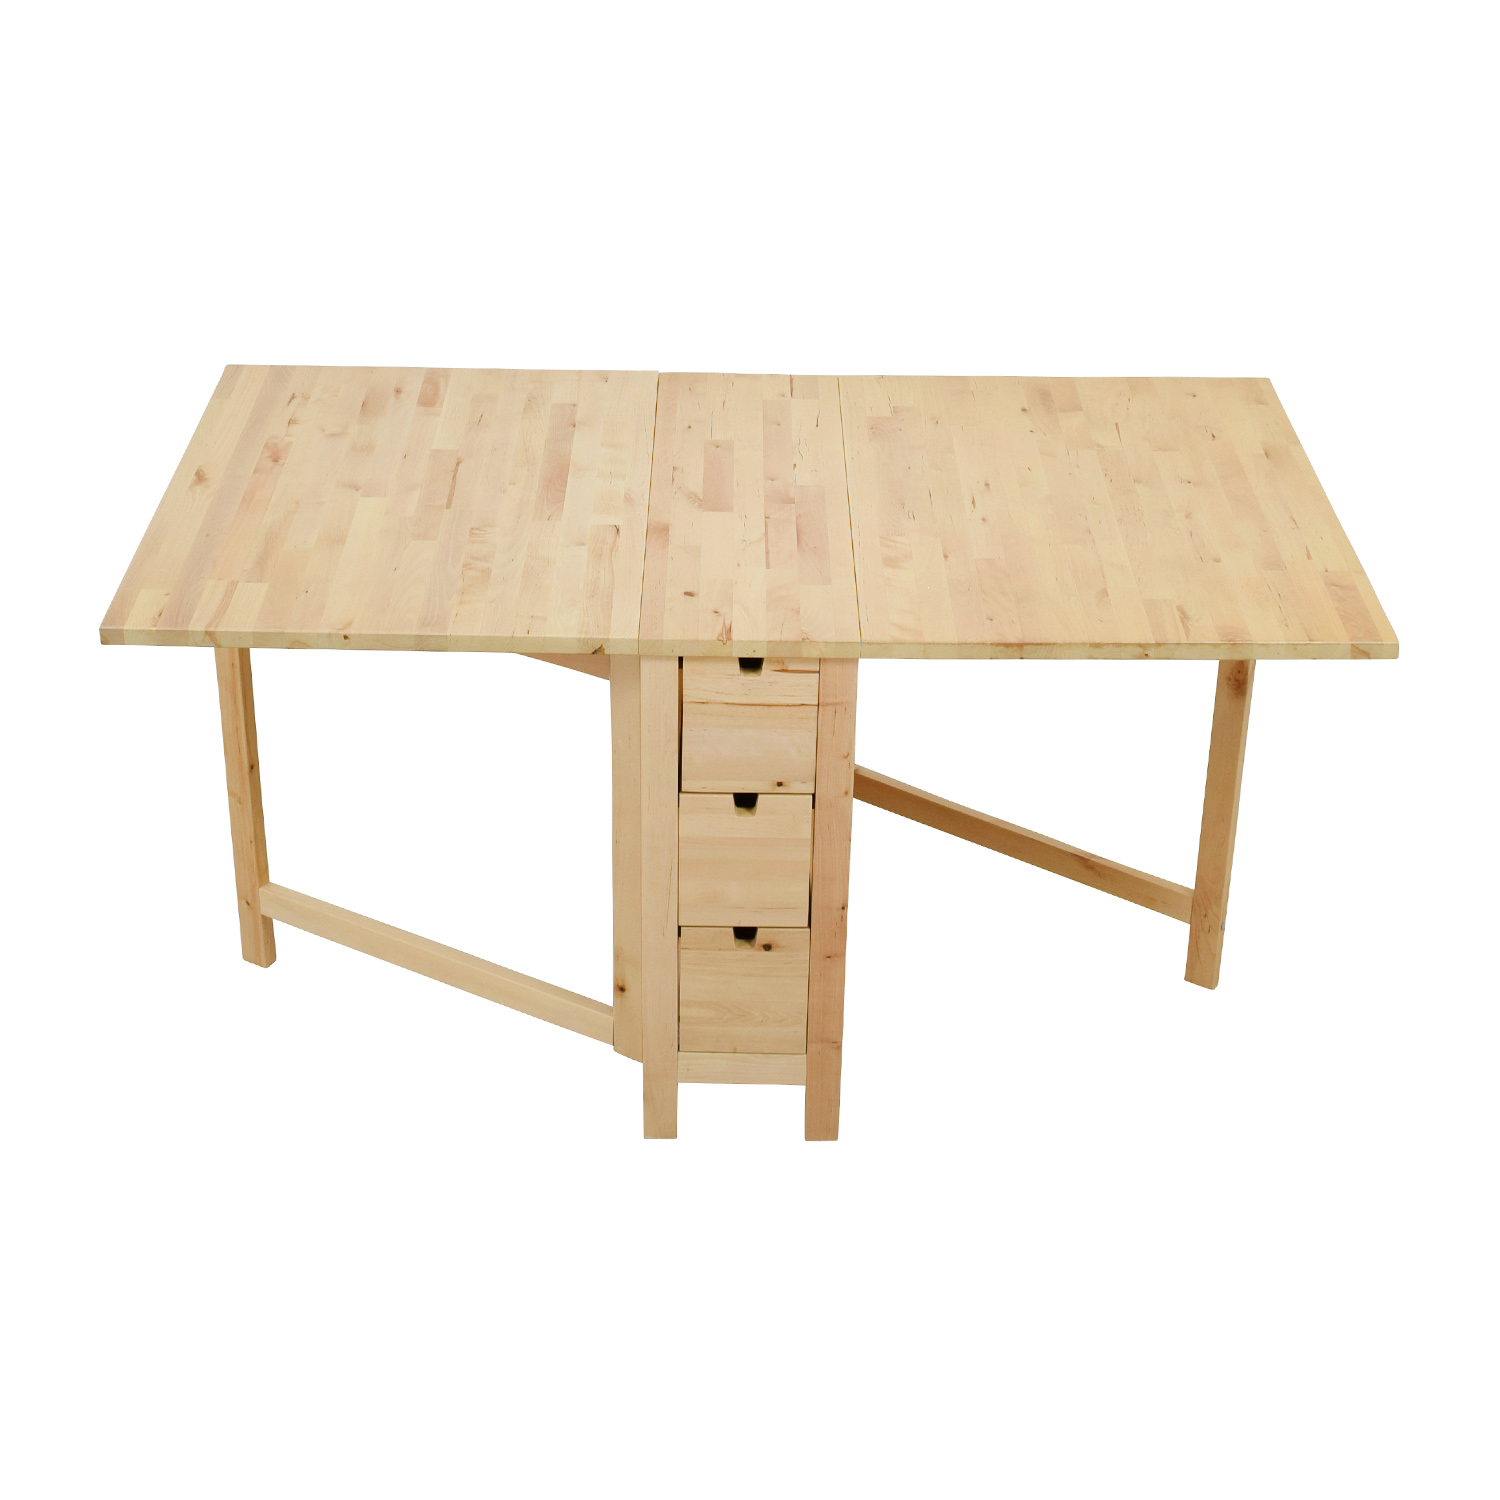 Ikea Birch Norden Gateleg Drop Leaf Table With Drawers Online